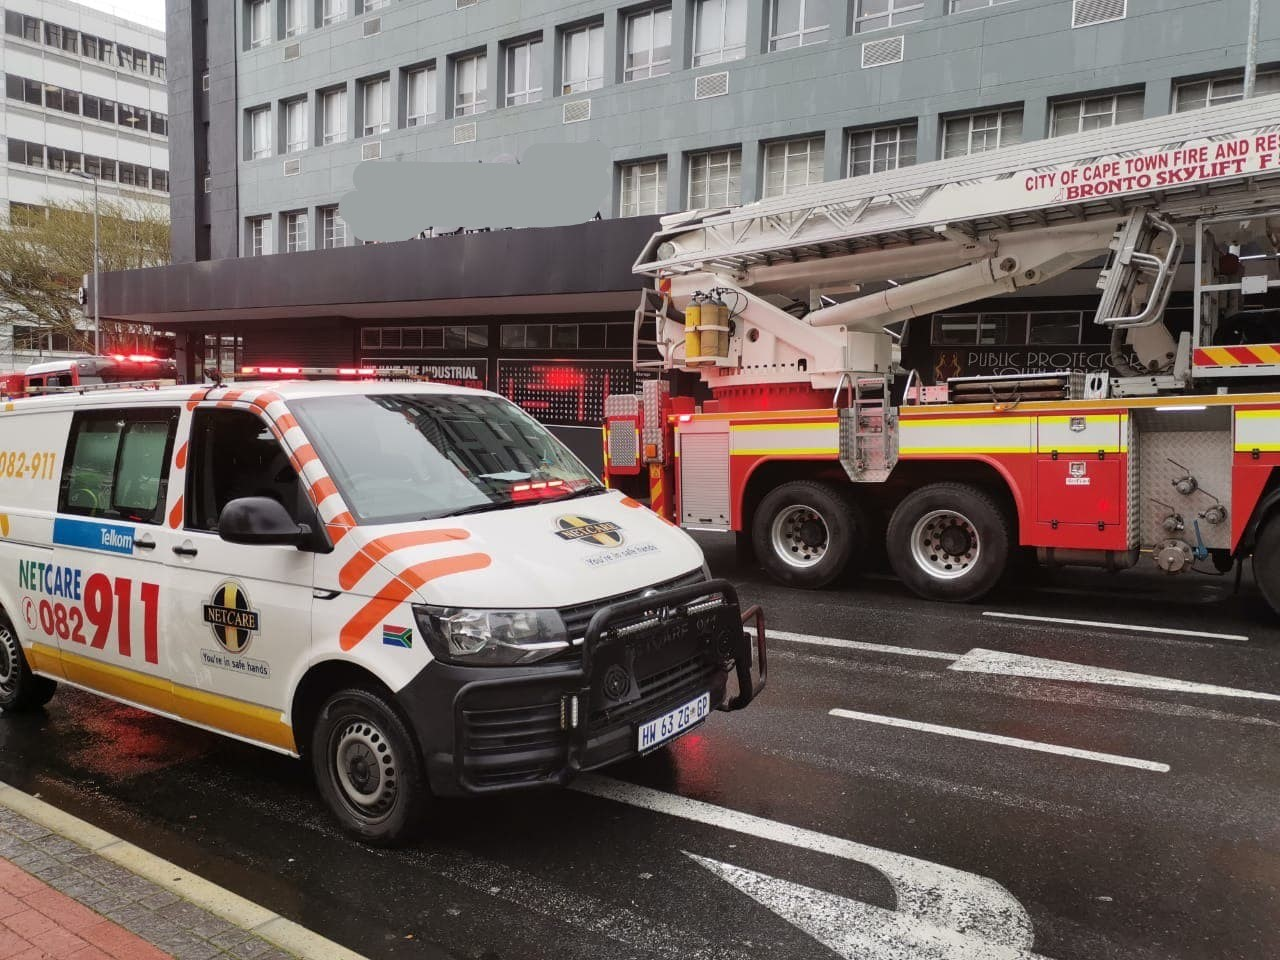 Western Cape: No injuries in Cape Town building fire